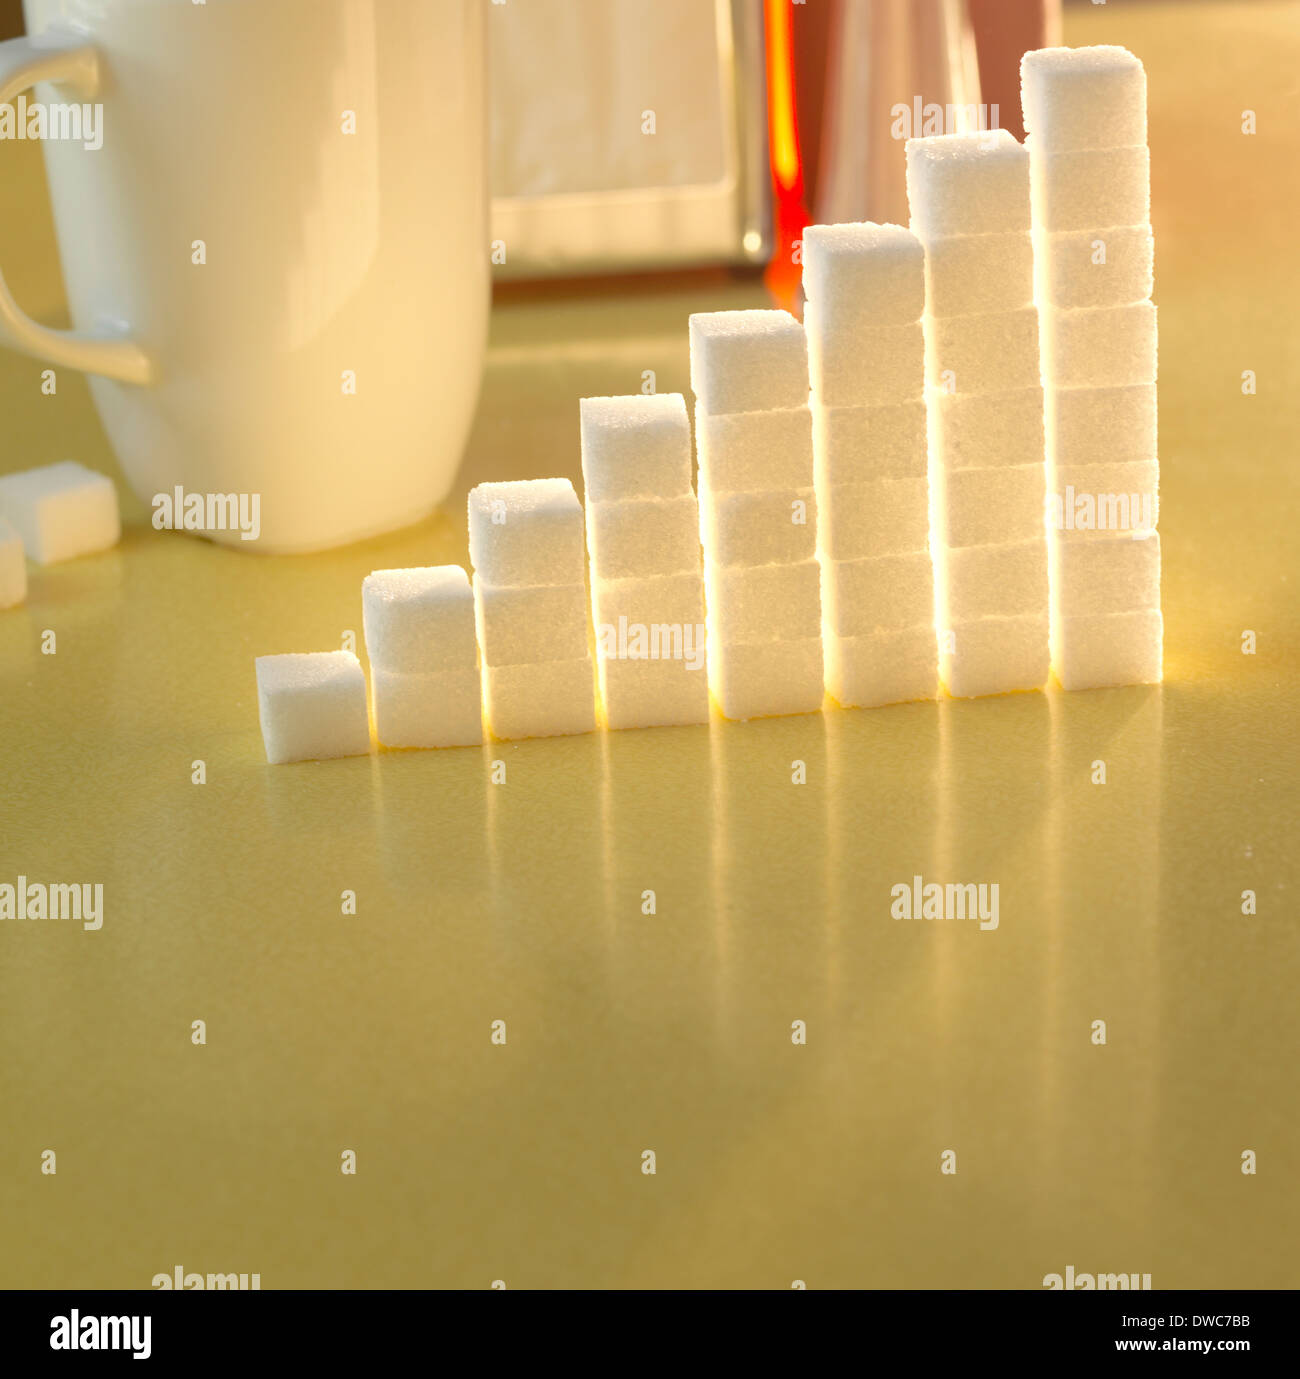 Stack of sugar cubes in the shape of a graph on a yellow table - Stock Image